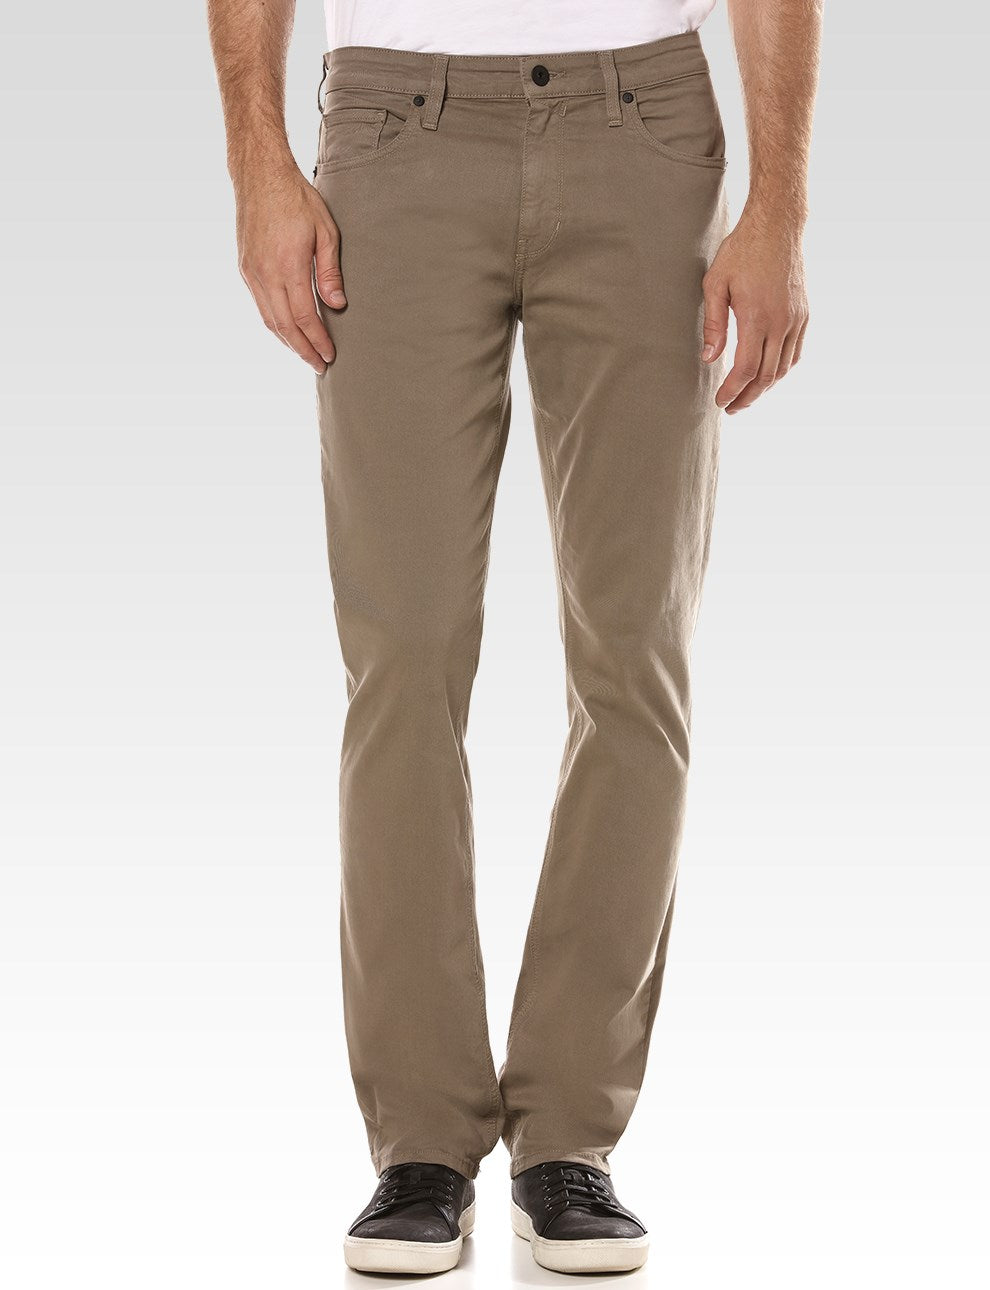 Paige Normandie Slim Fit Iron Mountain Twill